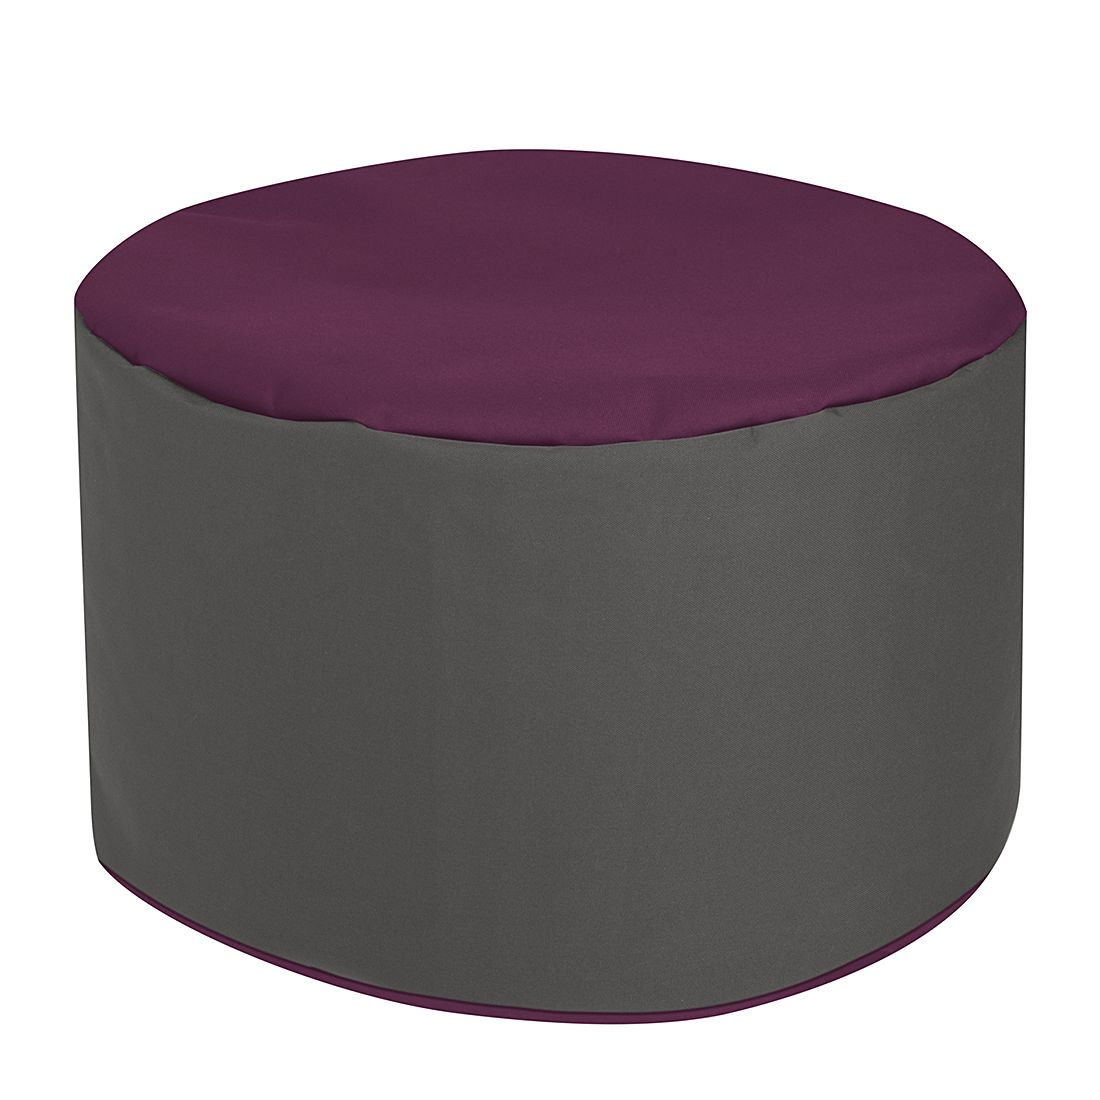 goedkoop Voetenbank Bebop Scuba Aubergine SITTING POINT